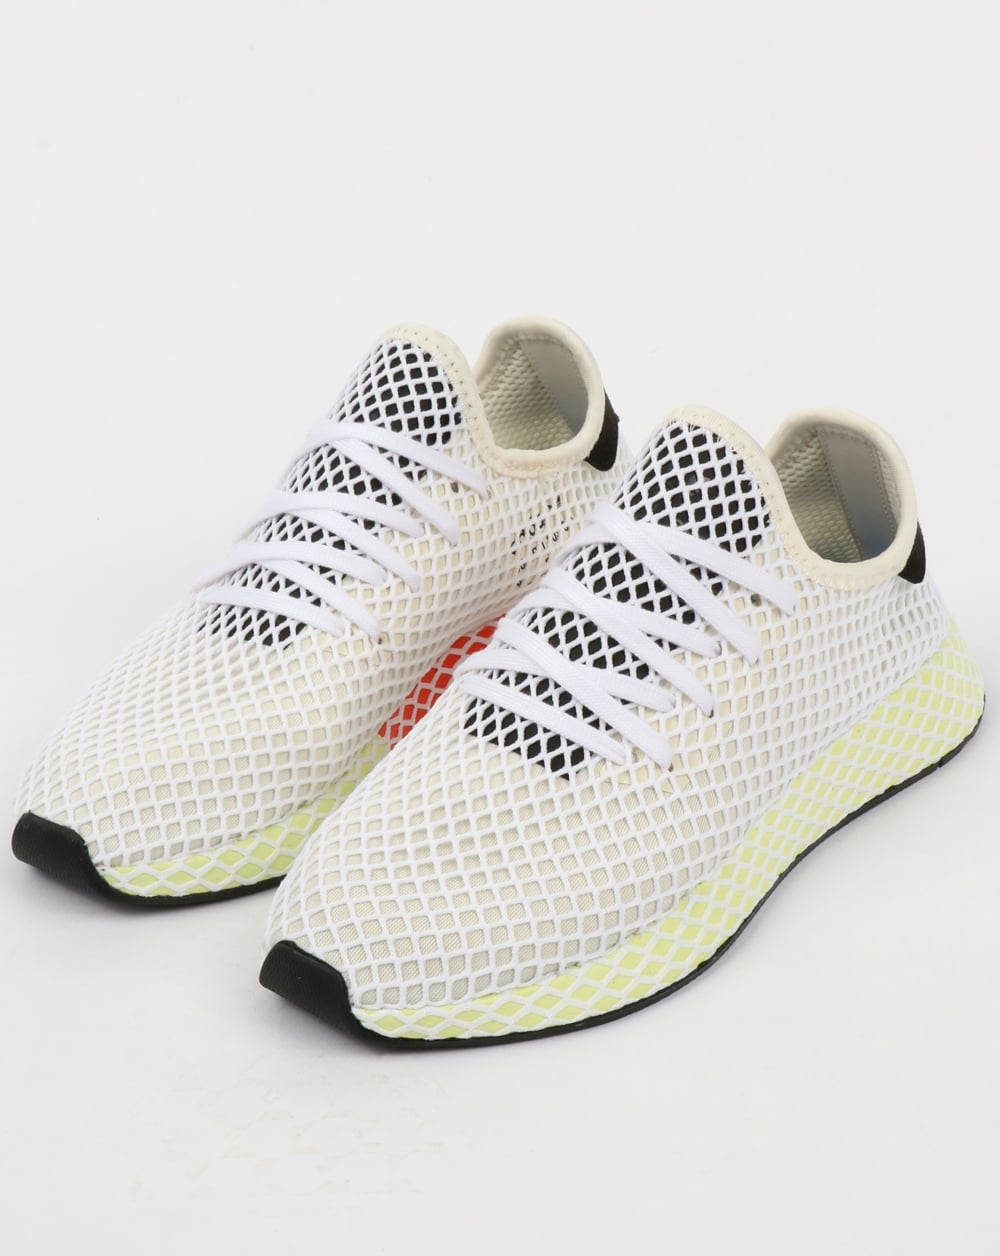 new styles d9988 1a480 adidas Trainers Adidas Deerupt Runner Trainers Chalk WhiteBlack